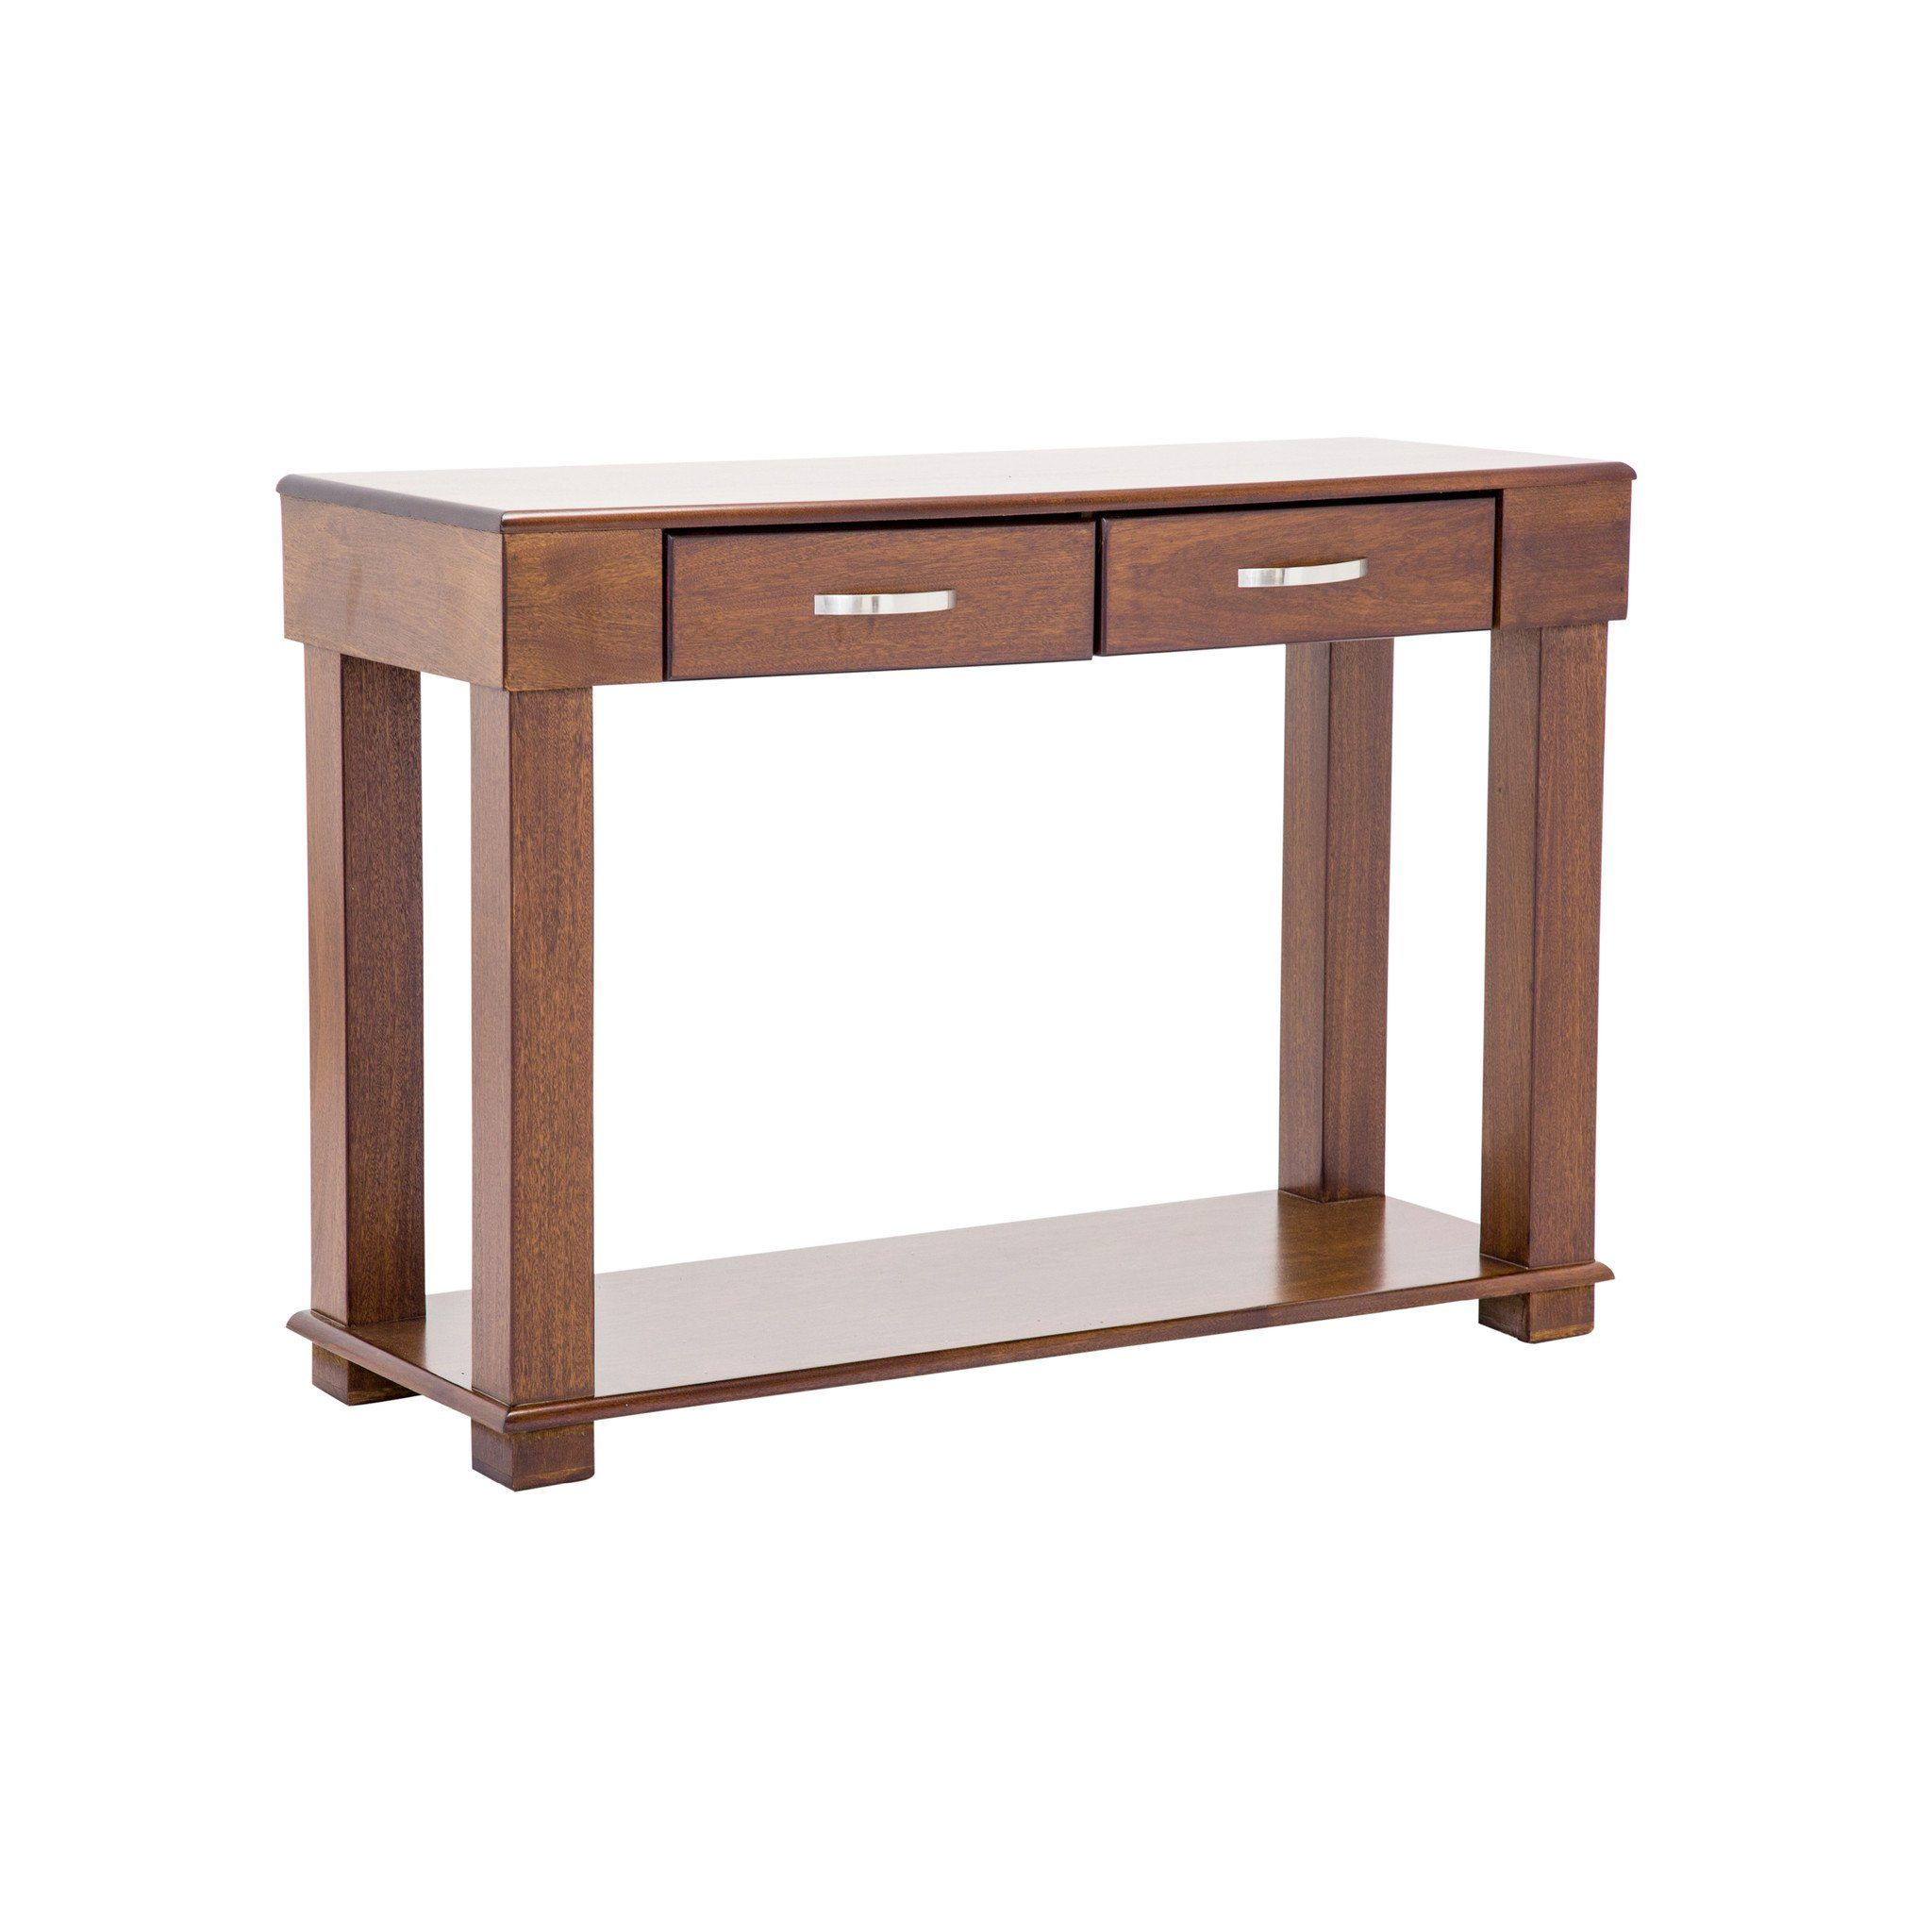 Urban Server - Walnut or Dark Mahogany